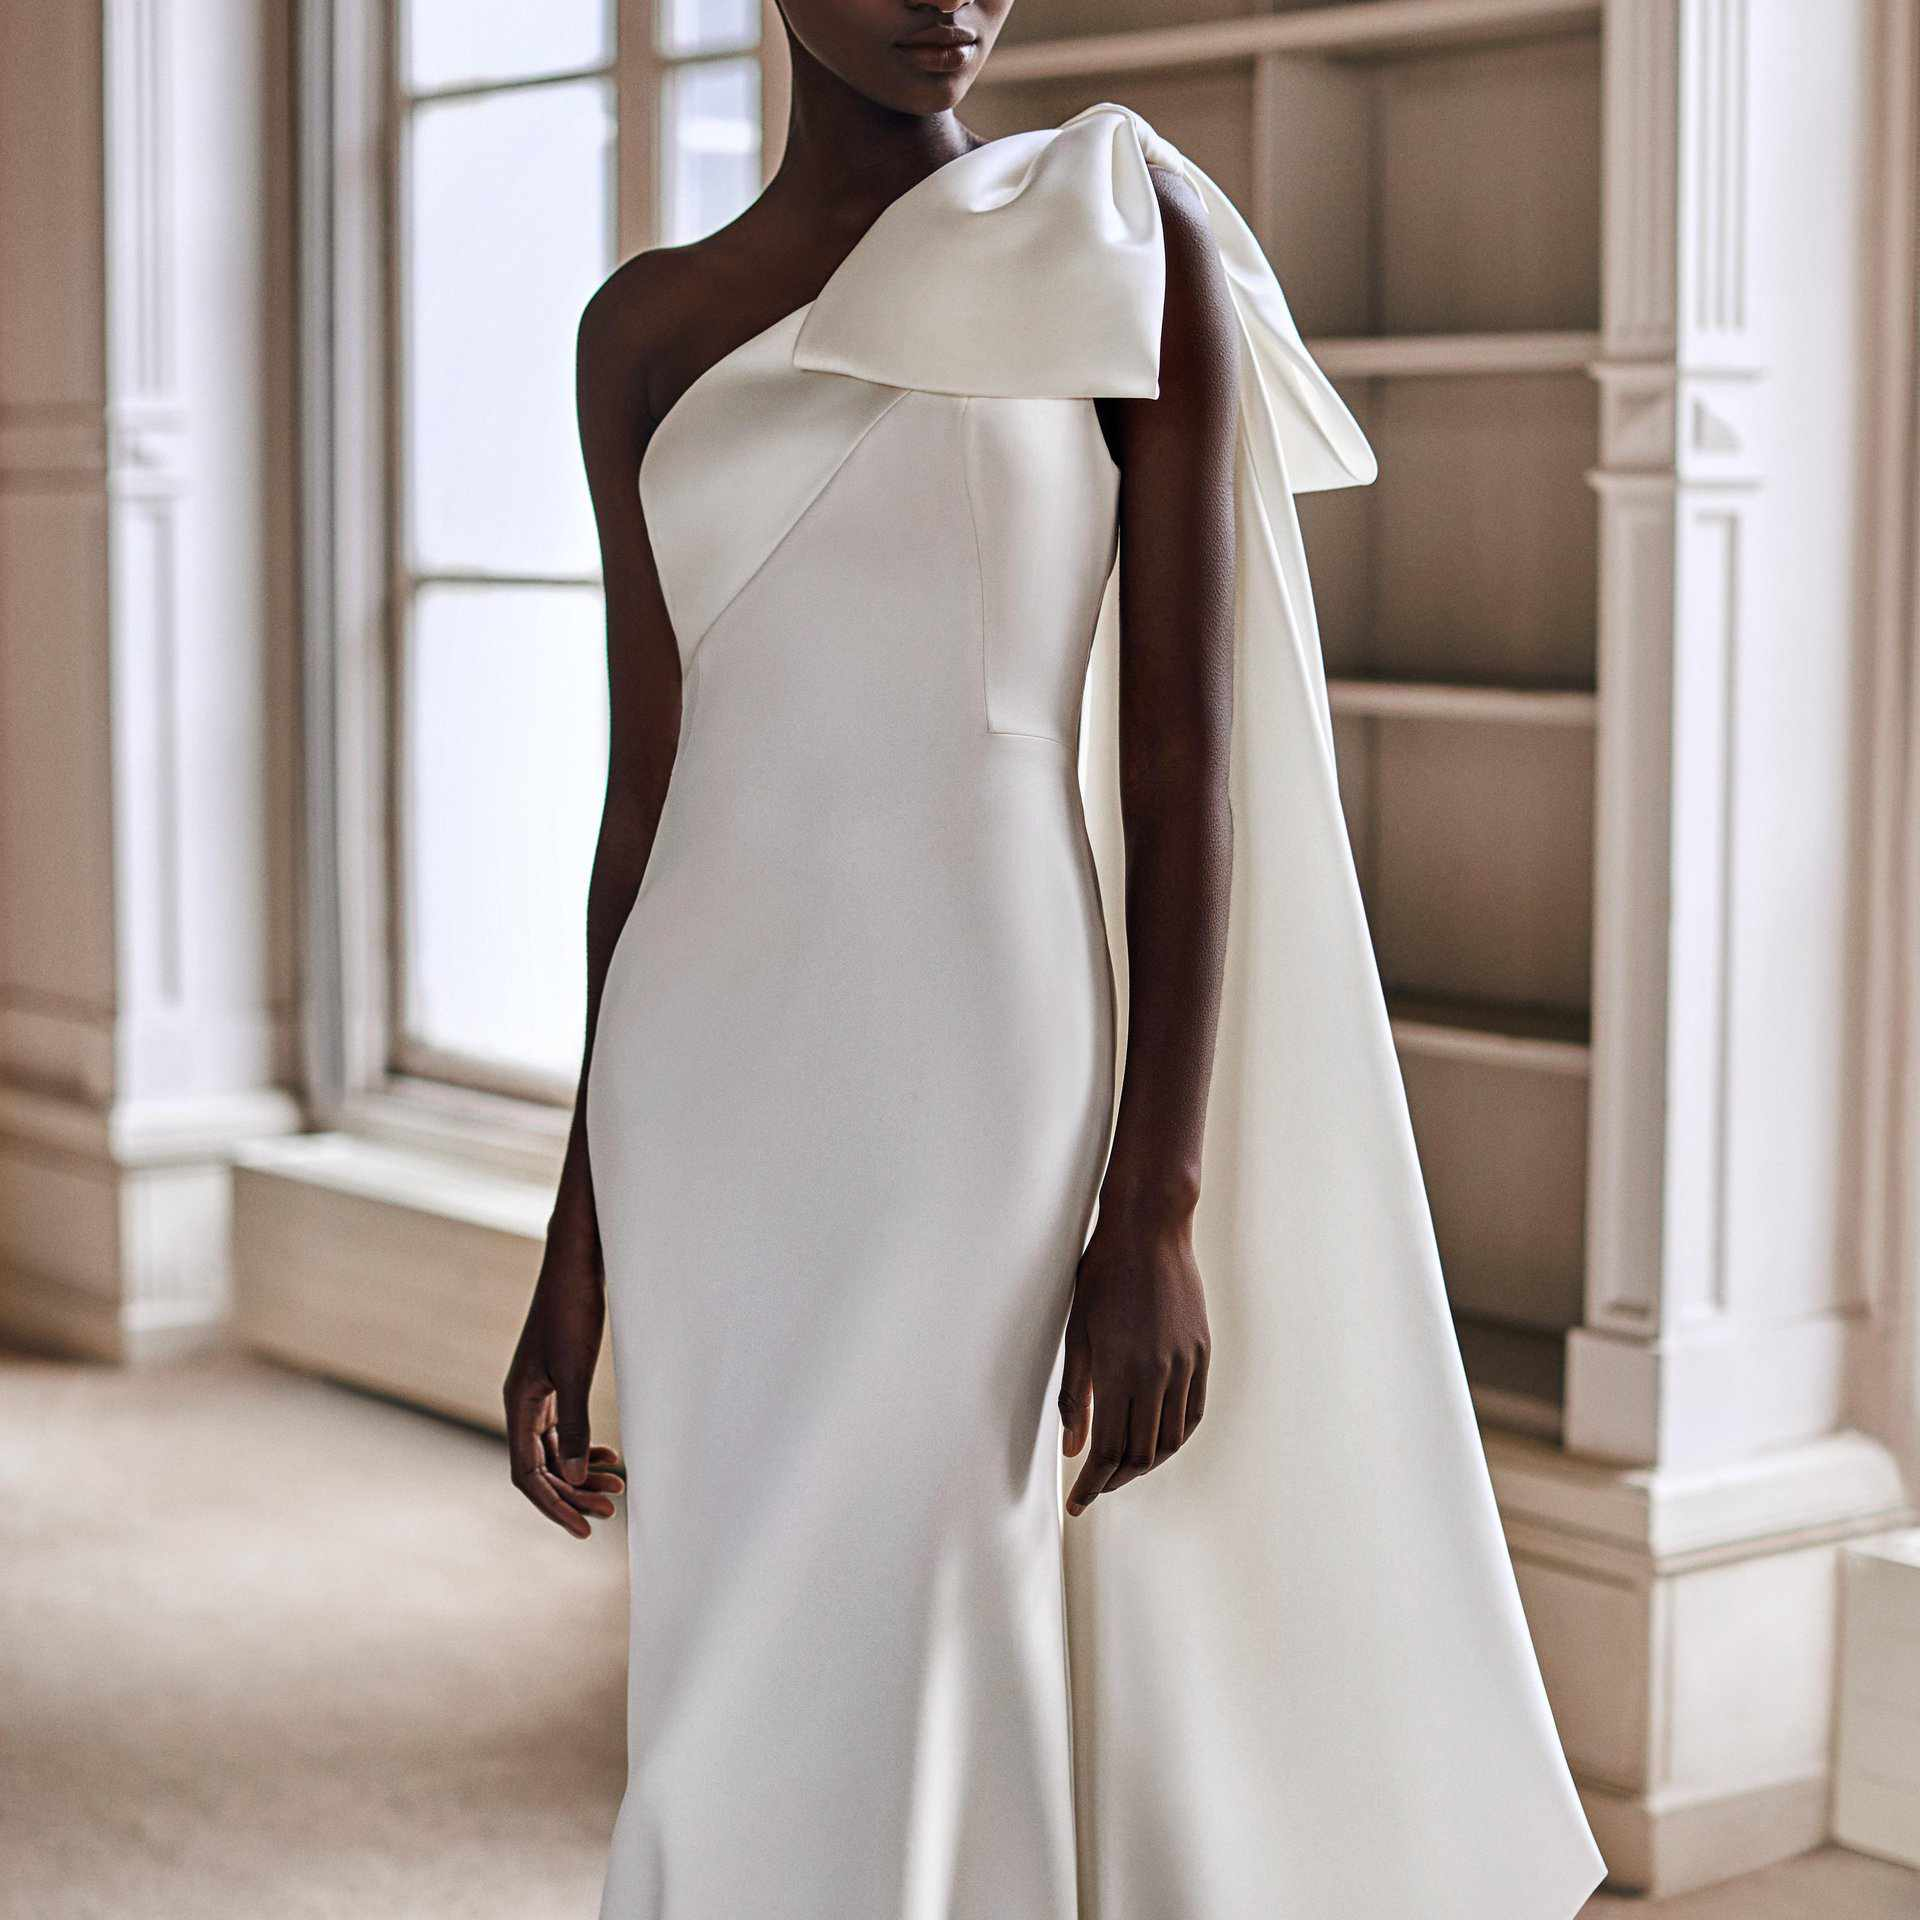 Viktor&Rolf Mariage One-Shoulder Bow Fit-and-Flare Wedding Gown, price upon request